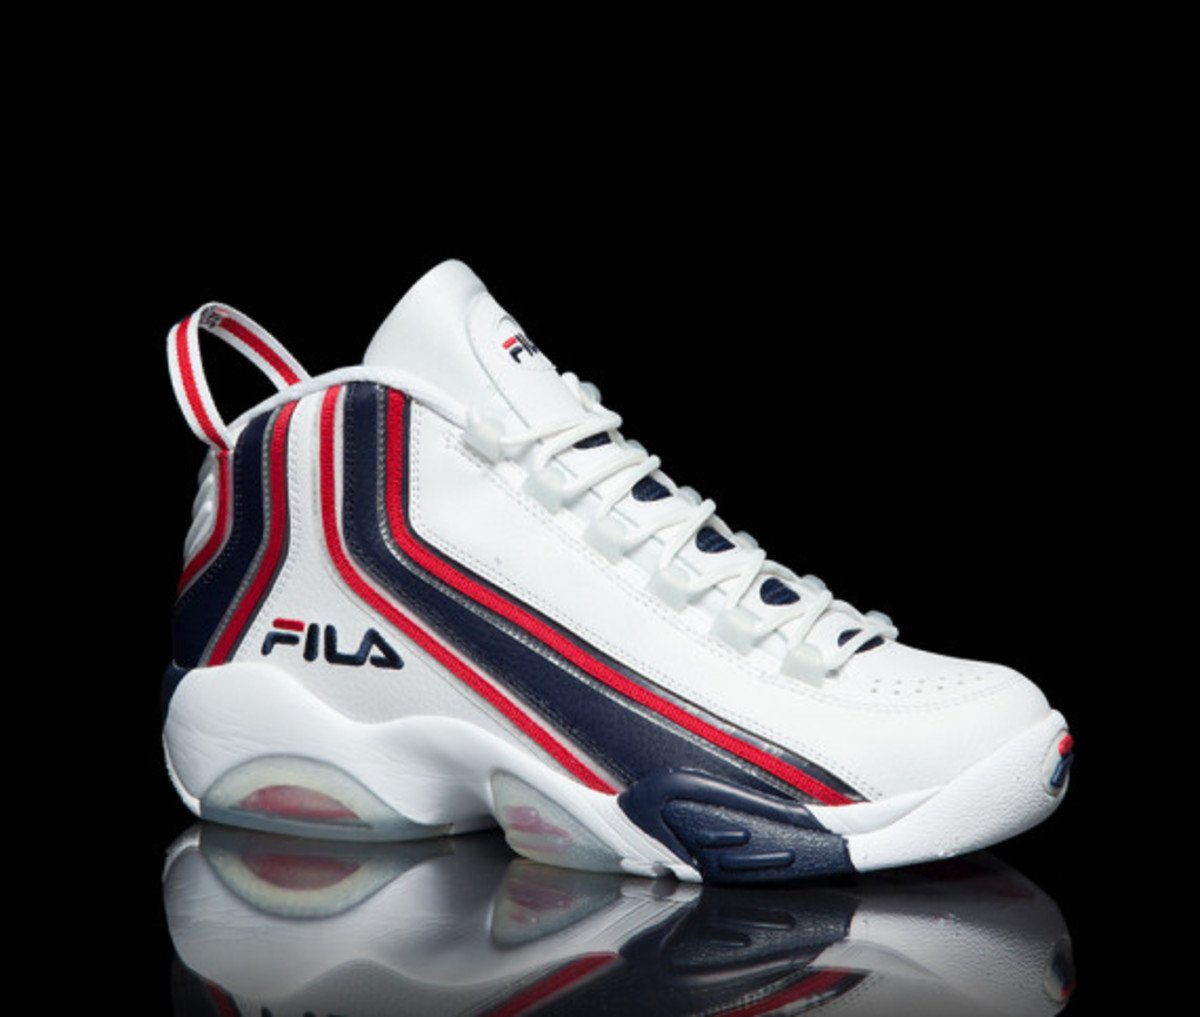 fila-the-stack-2-release-info-04